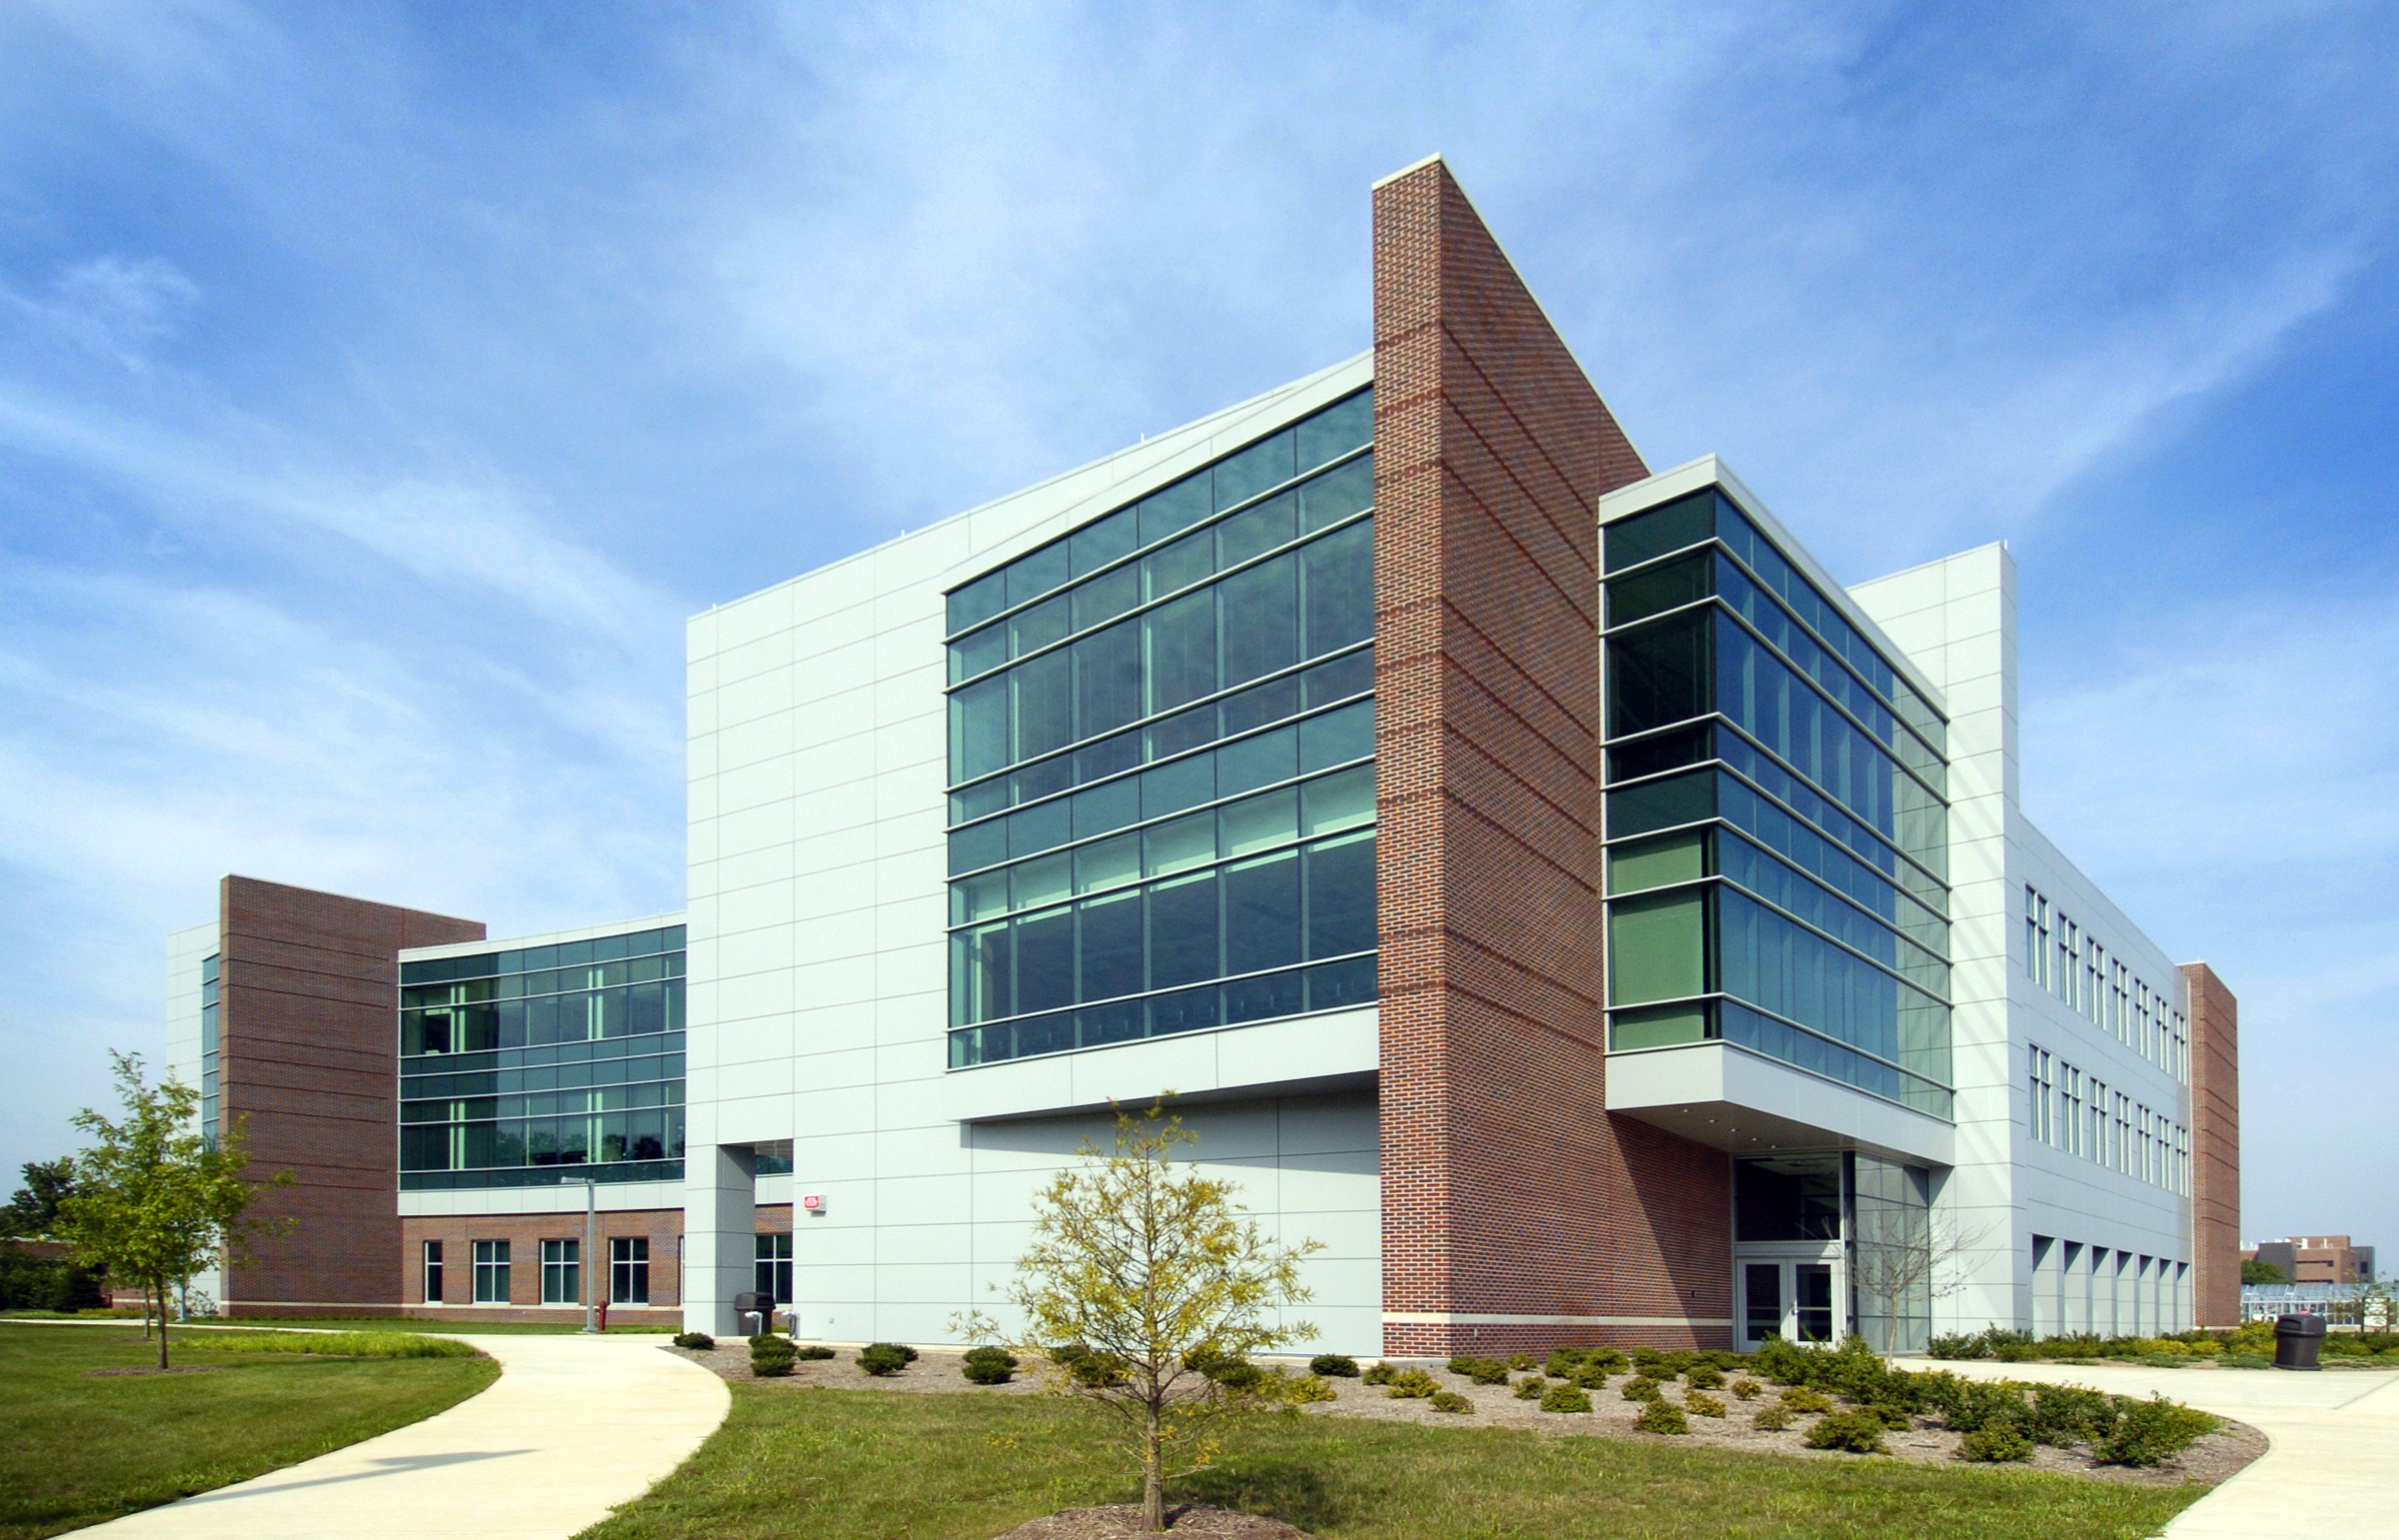 the future of biomedical engineering Explore biomedical engineering, other hot jobs for future engineers the outlook is bright for graduate students pursuing the relatively young field of biomedical engineering.